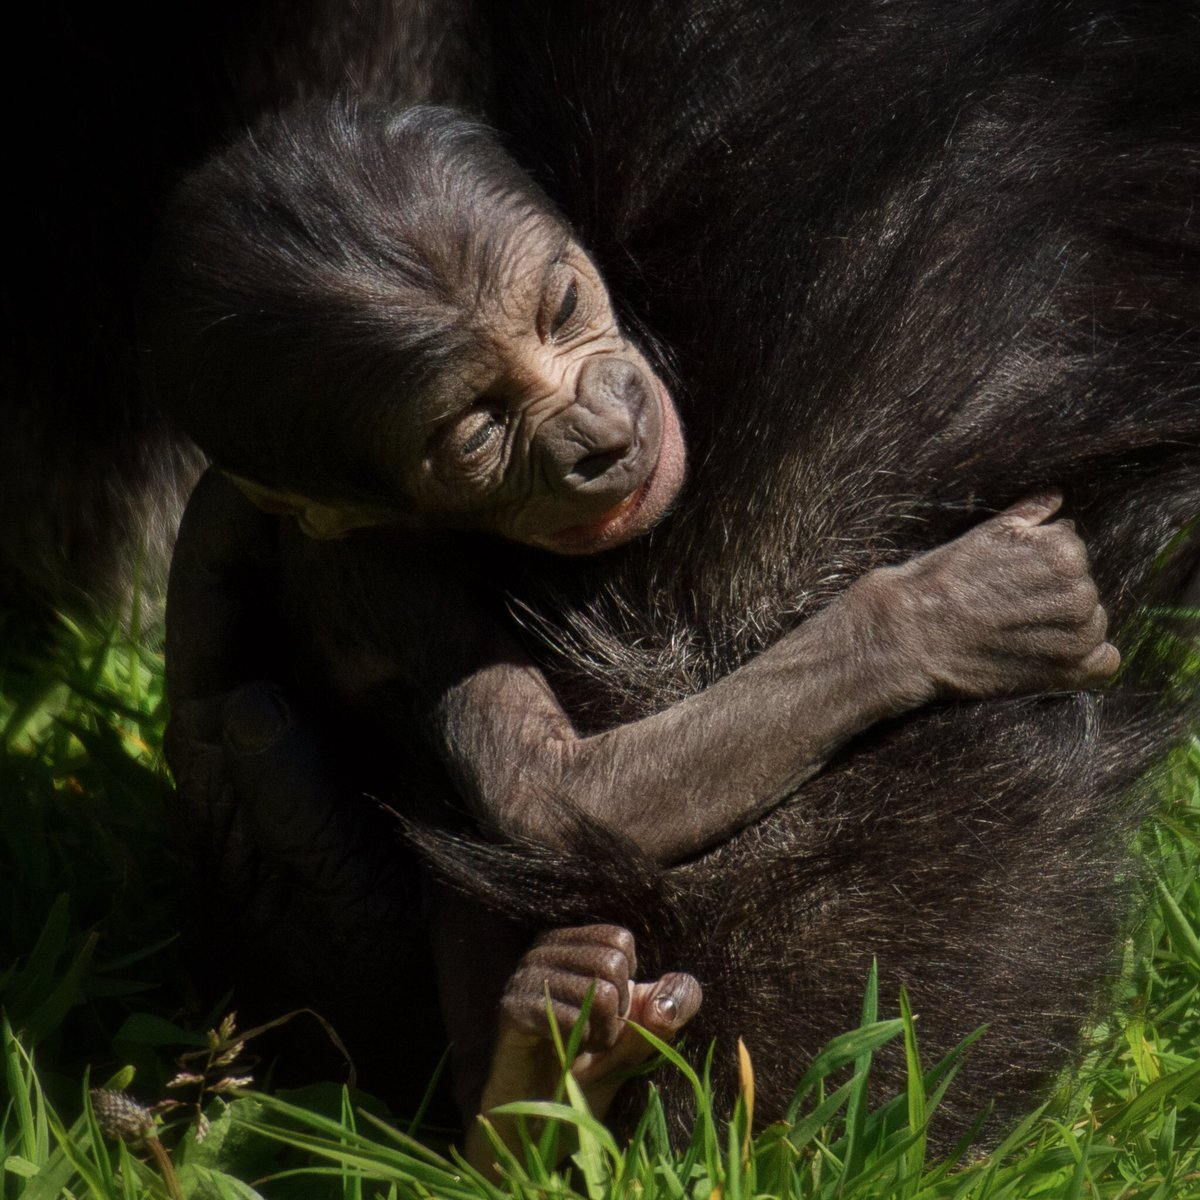 We're delighted to announce the birth of a western lowland gorilla here at Durrell Wildlife Park! https://t.co/LNIkQ3n20f